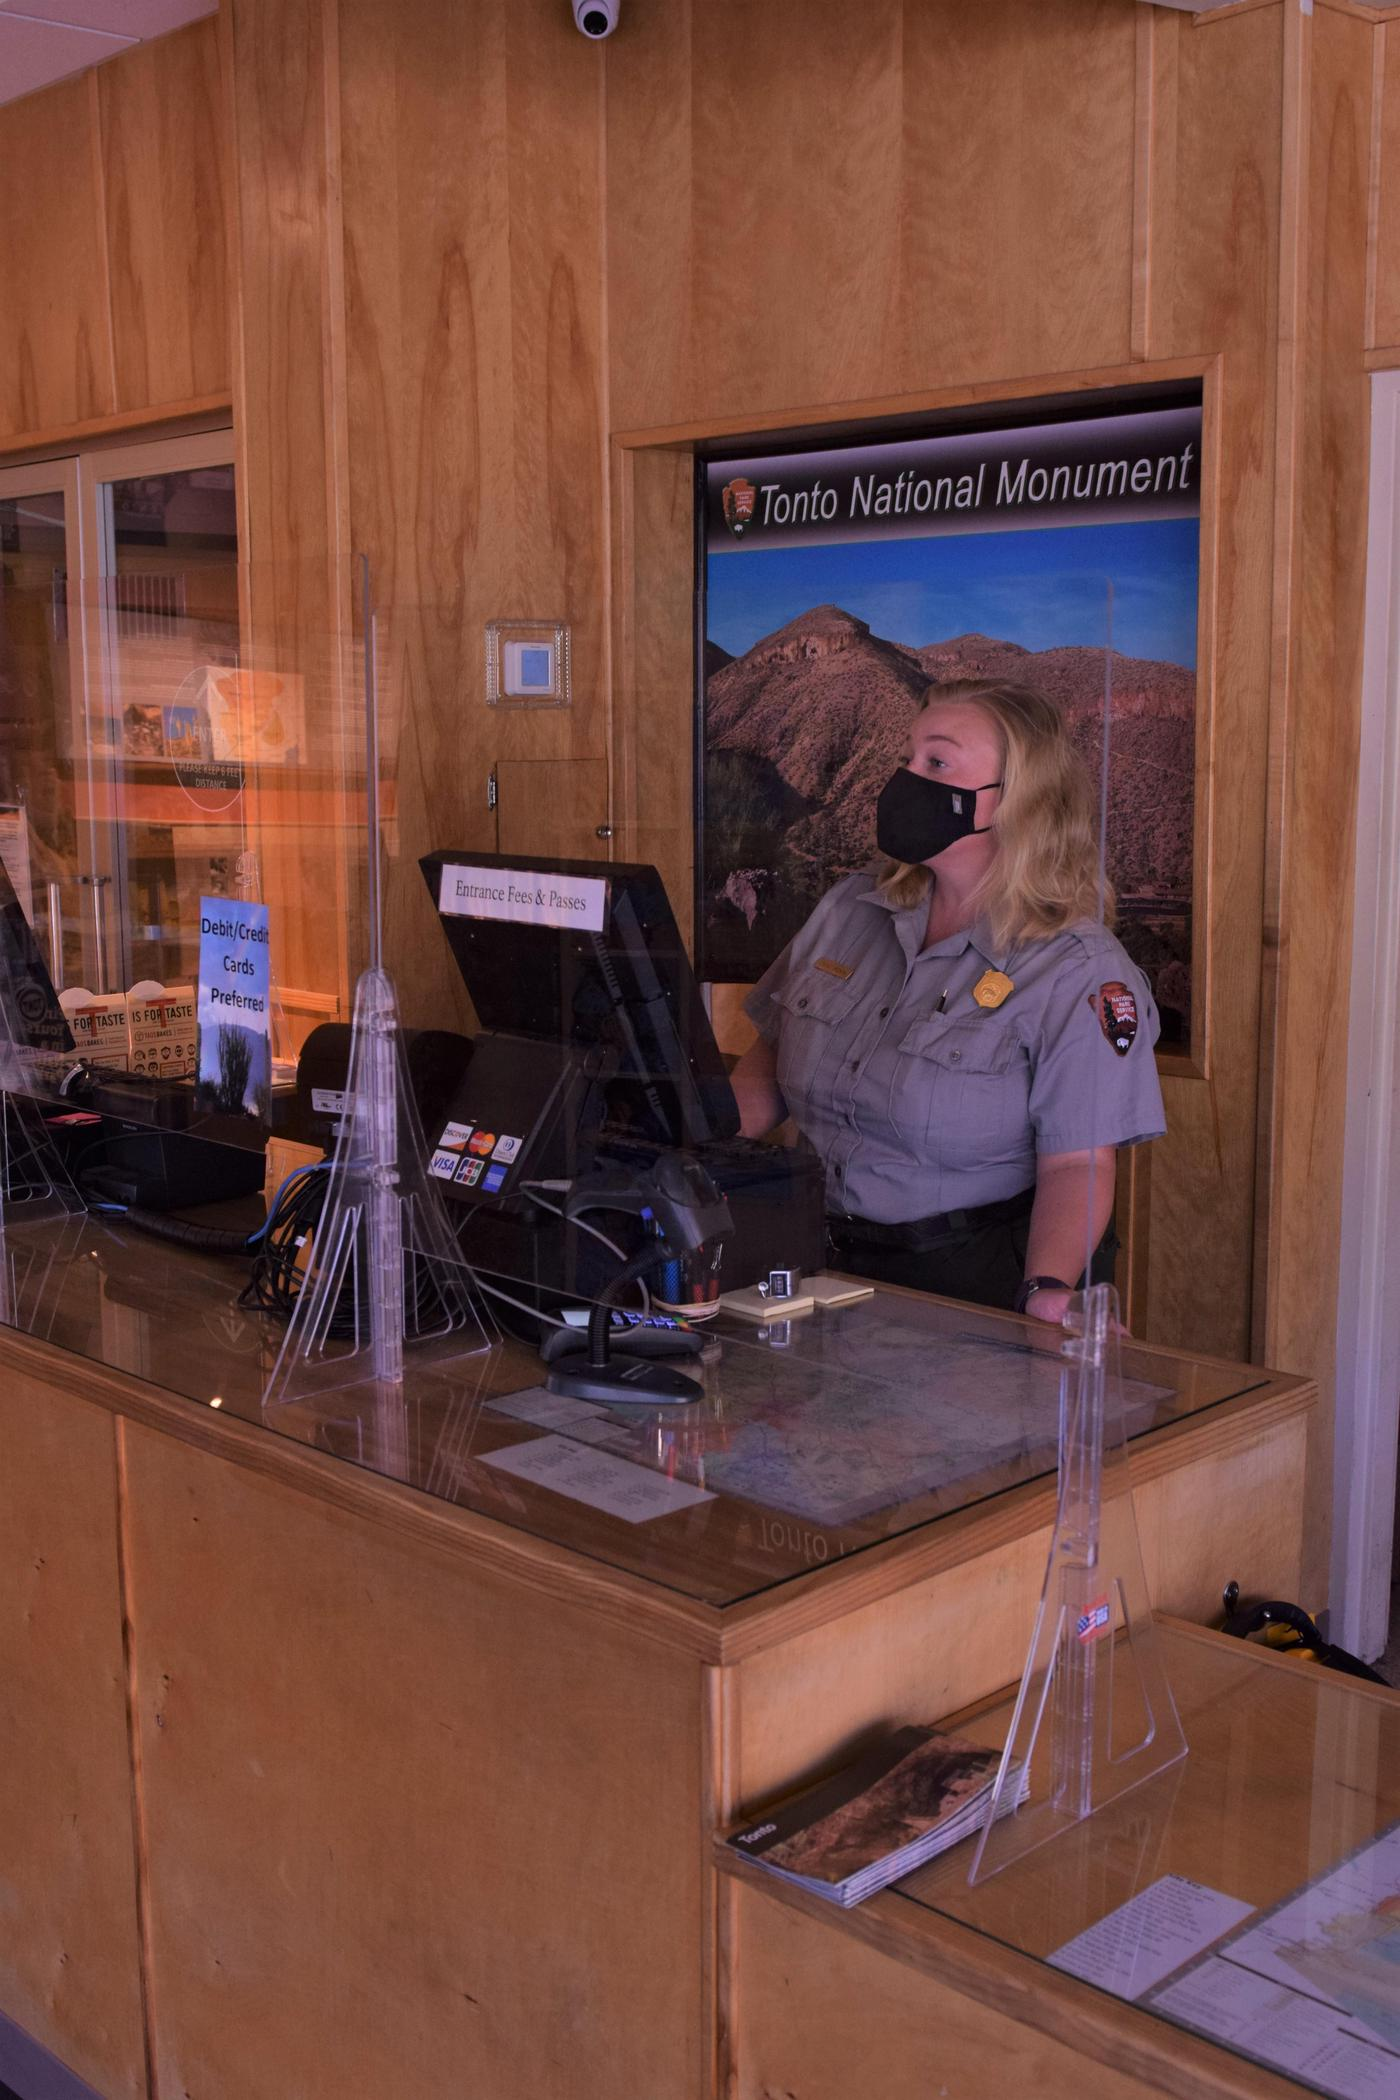 Ranger at DeskPark Staff are available to answer your questions and check you in for the start of your hike at the Visitor Center.